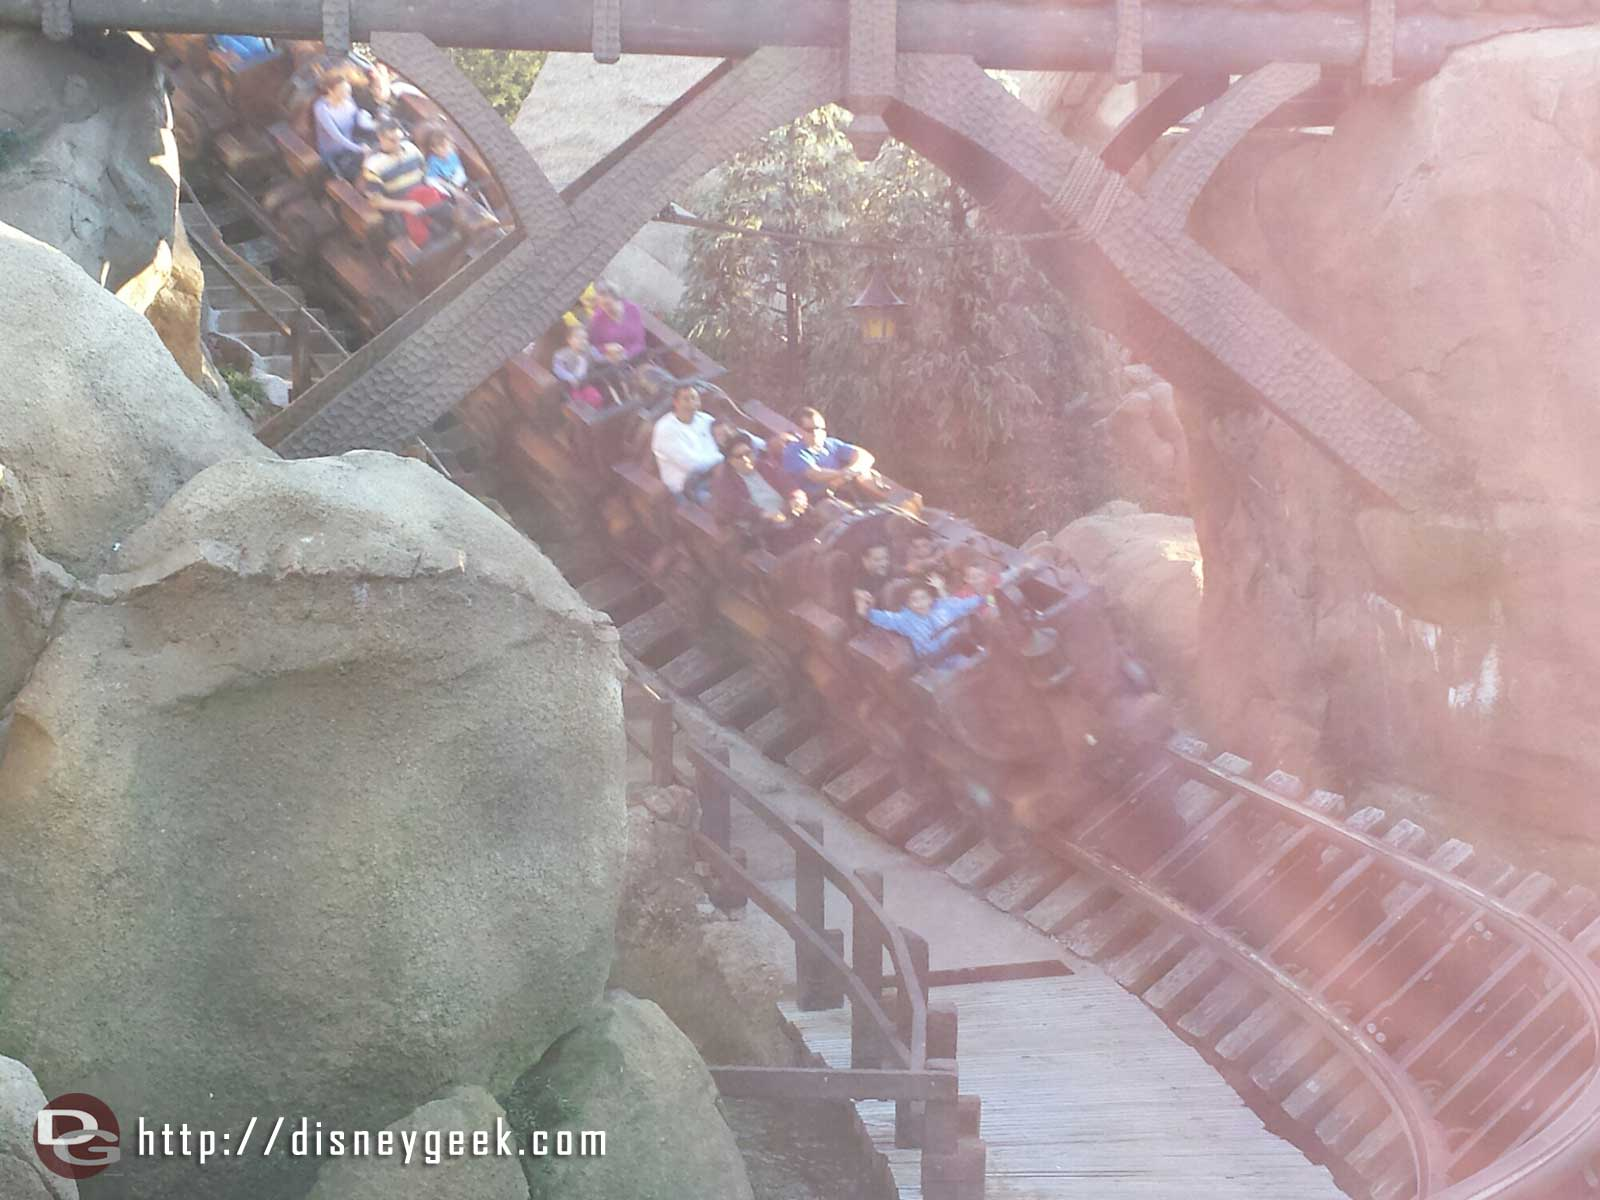 Seven Dwarfs Mine Train 120 min posted stand by today